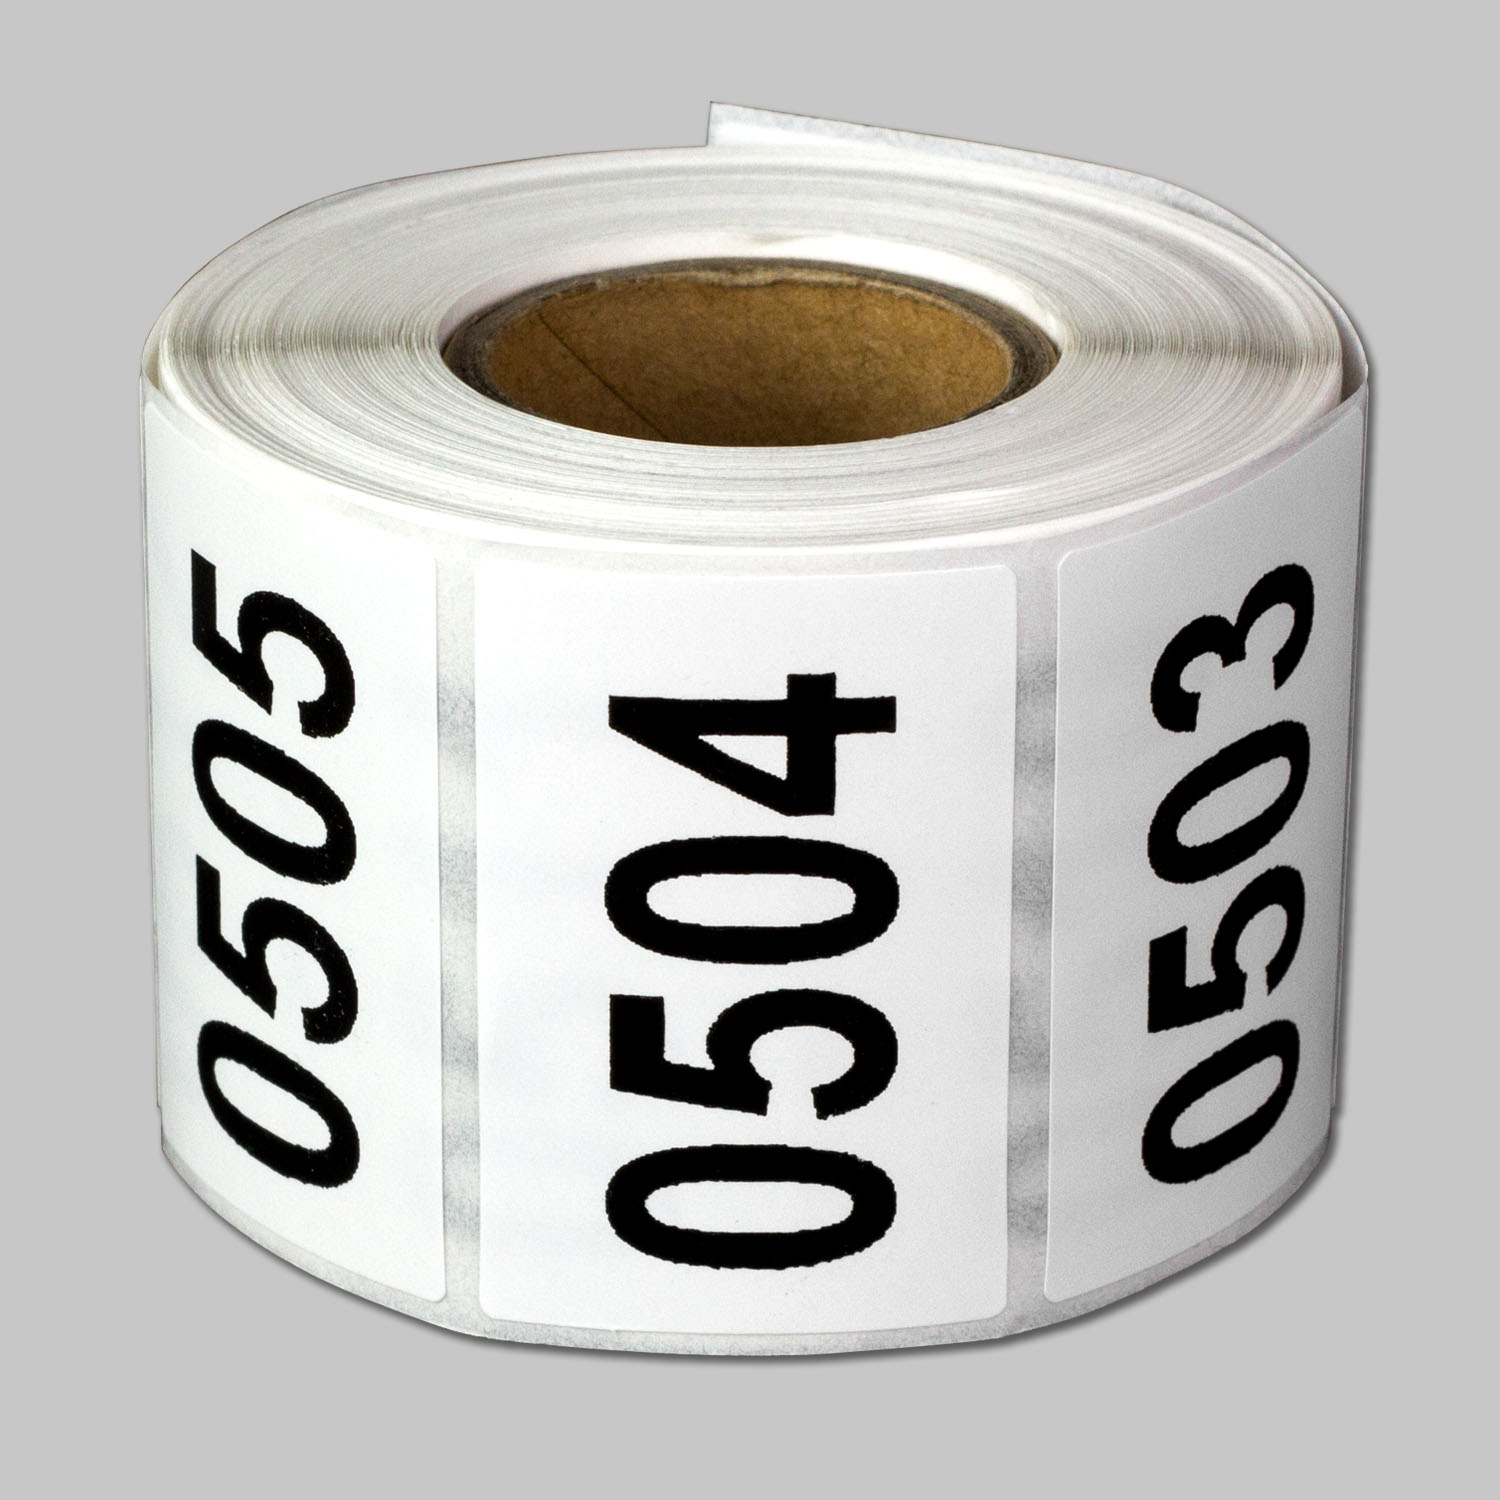 """OfficeSmartLabels 1.5"""" x 1"""" Consecutive Number Labels 0501 to 1000 for Iventory & Organization (White-Black, 500 Labels per Roll)"""